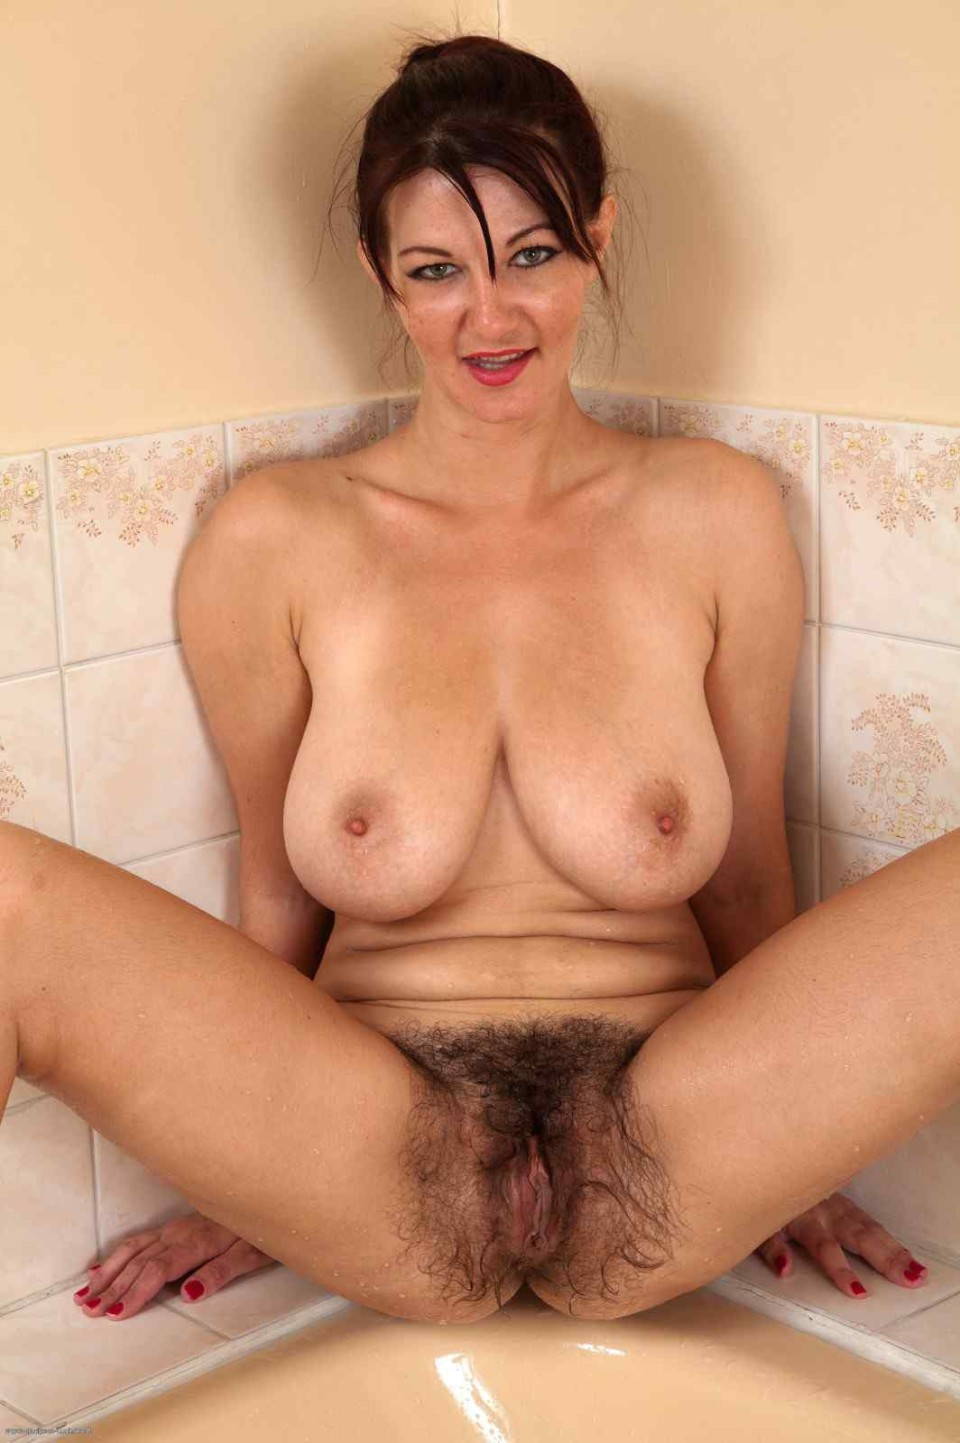 Natural Hairy Moms Pics - 22 Pic Of 53-6038